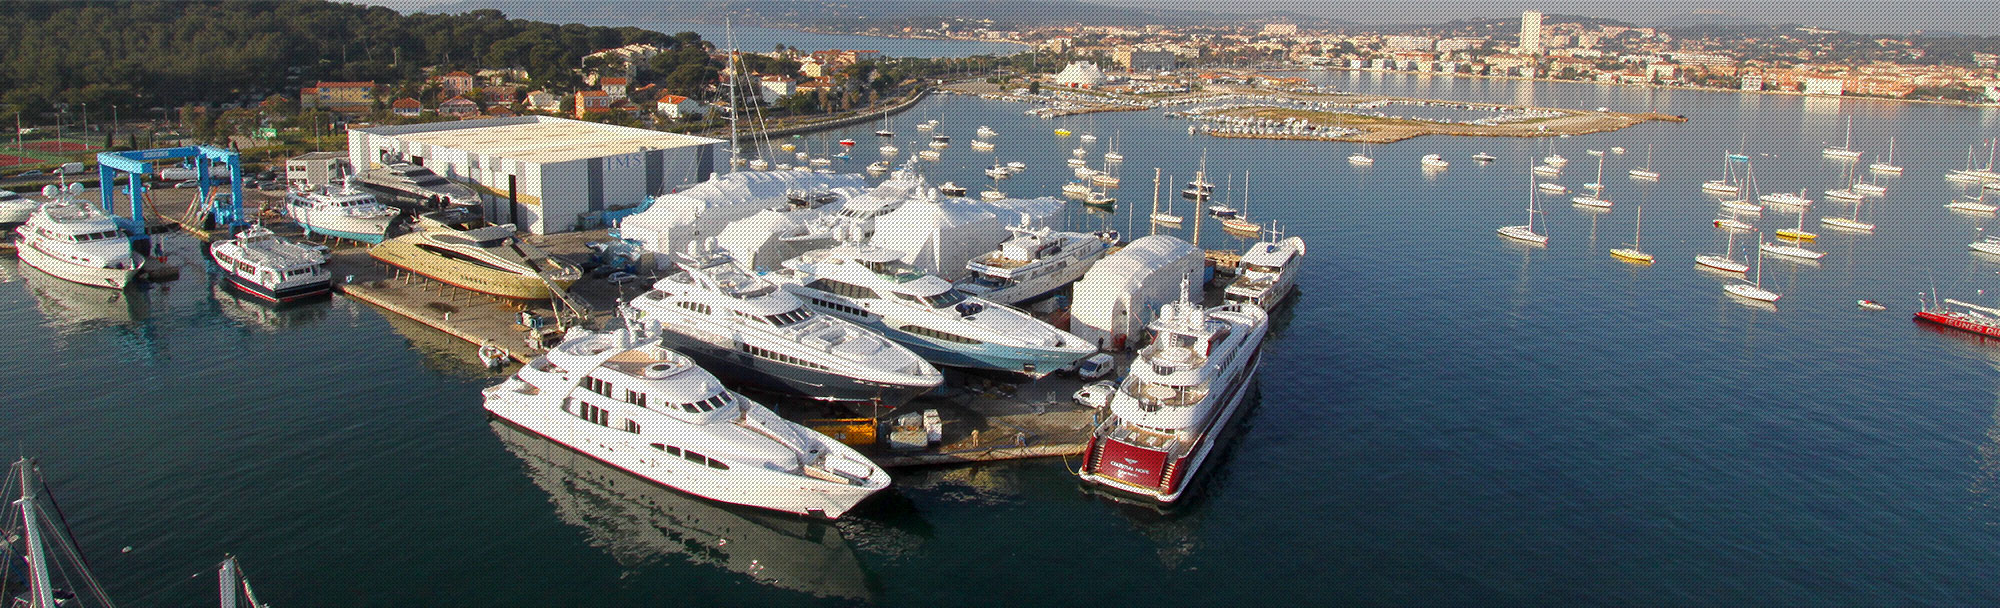 Port de St Mandrier chantier naval yachting IMS 300